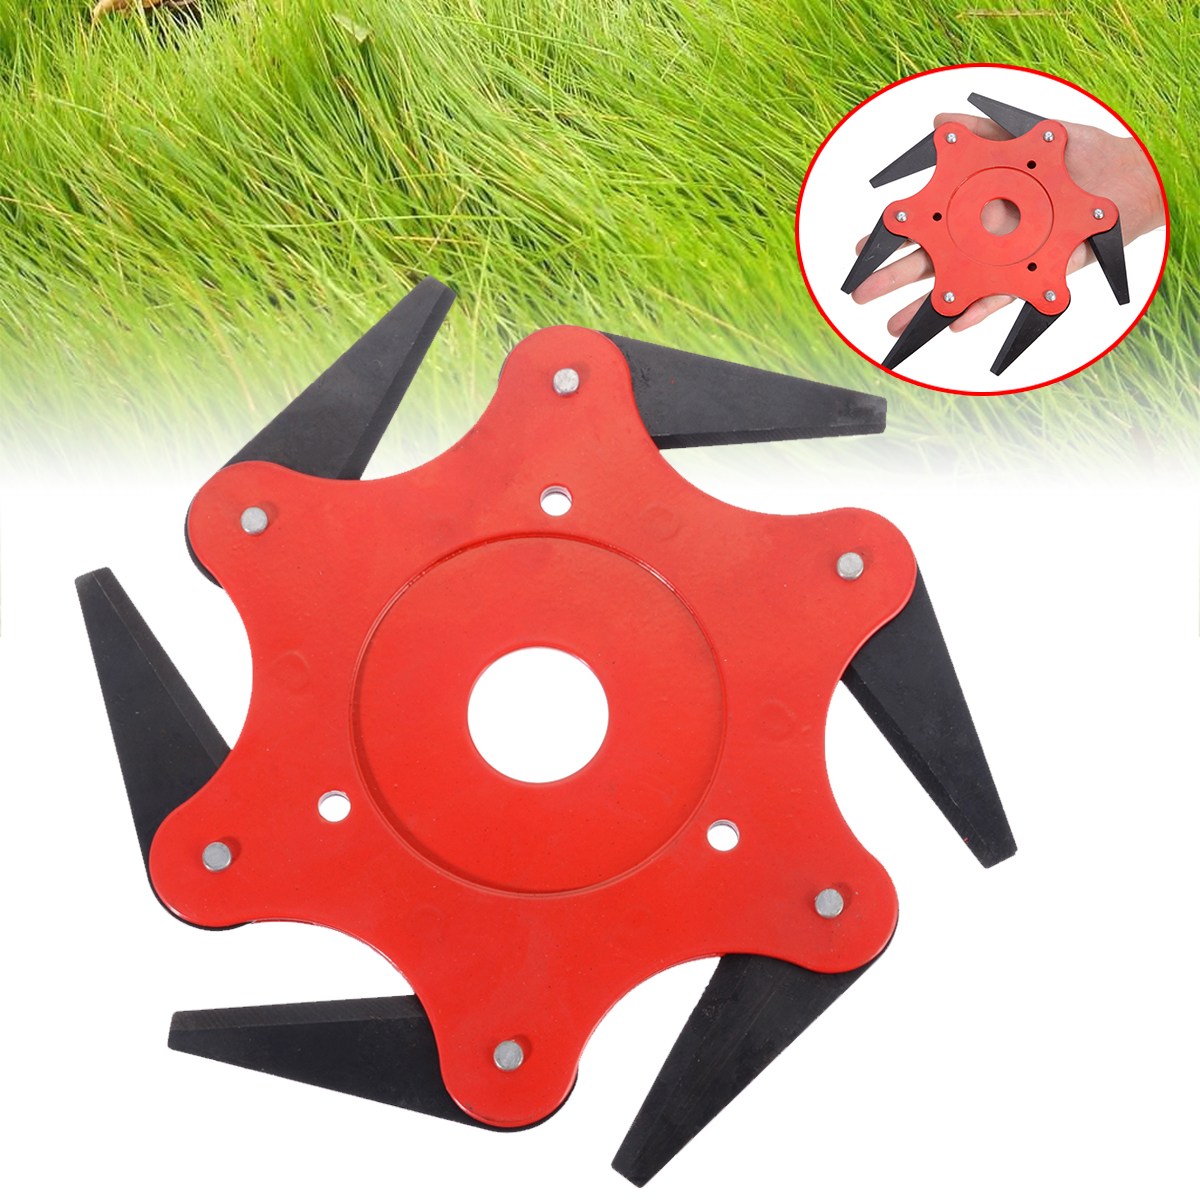 6 Blades Grass Trimmer Head 65Mn Brush Cutter Weed Brush Cutting Head Easy Cutting Garden Power Tool Accessories